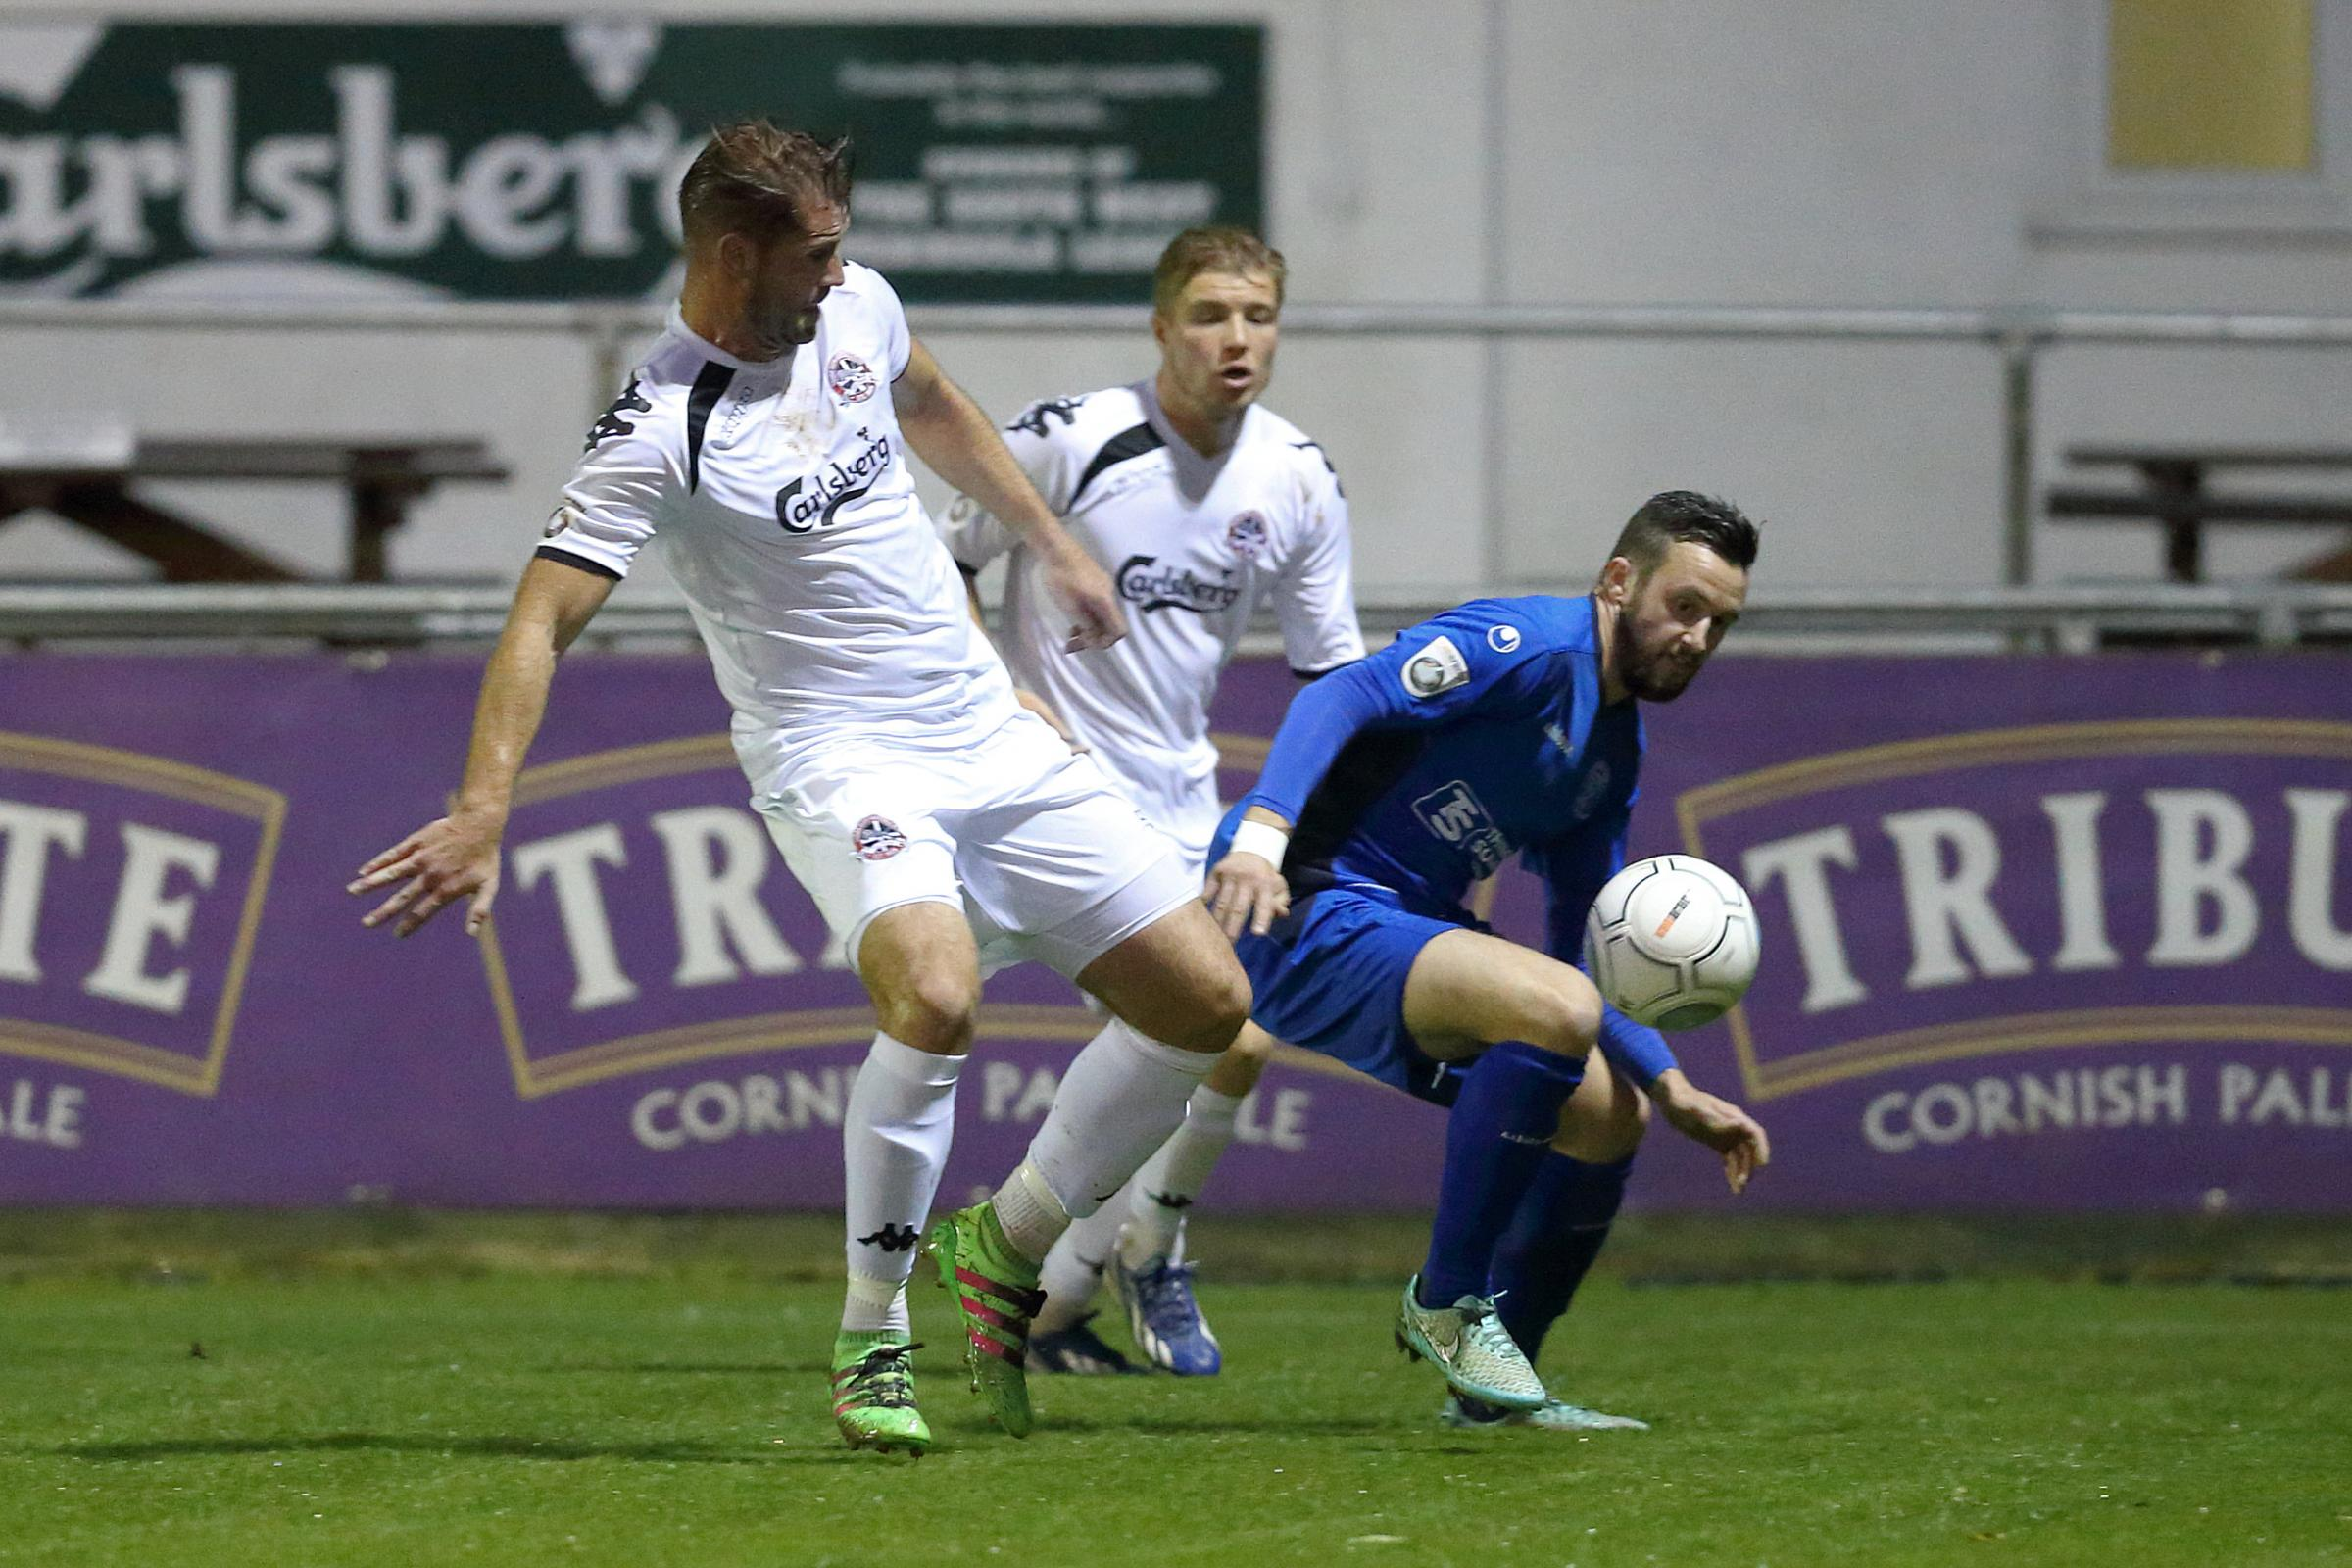 Matt Smith (blue) in action for Chippenham Town at Truro City. PICTURE: RICHARD CHAPPELL